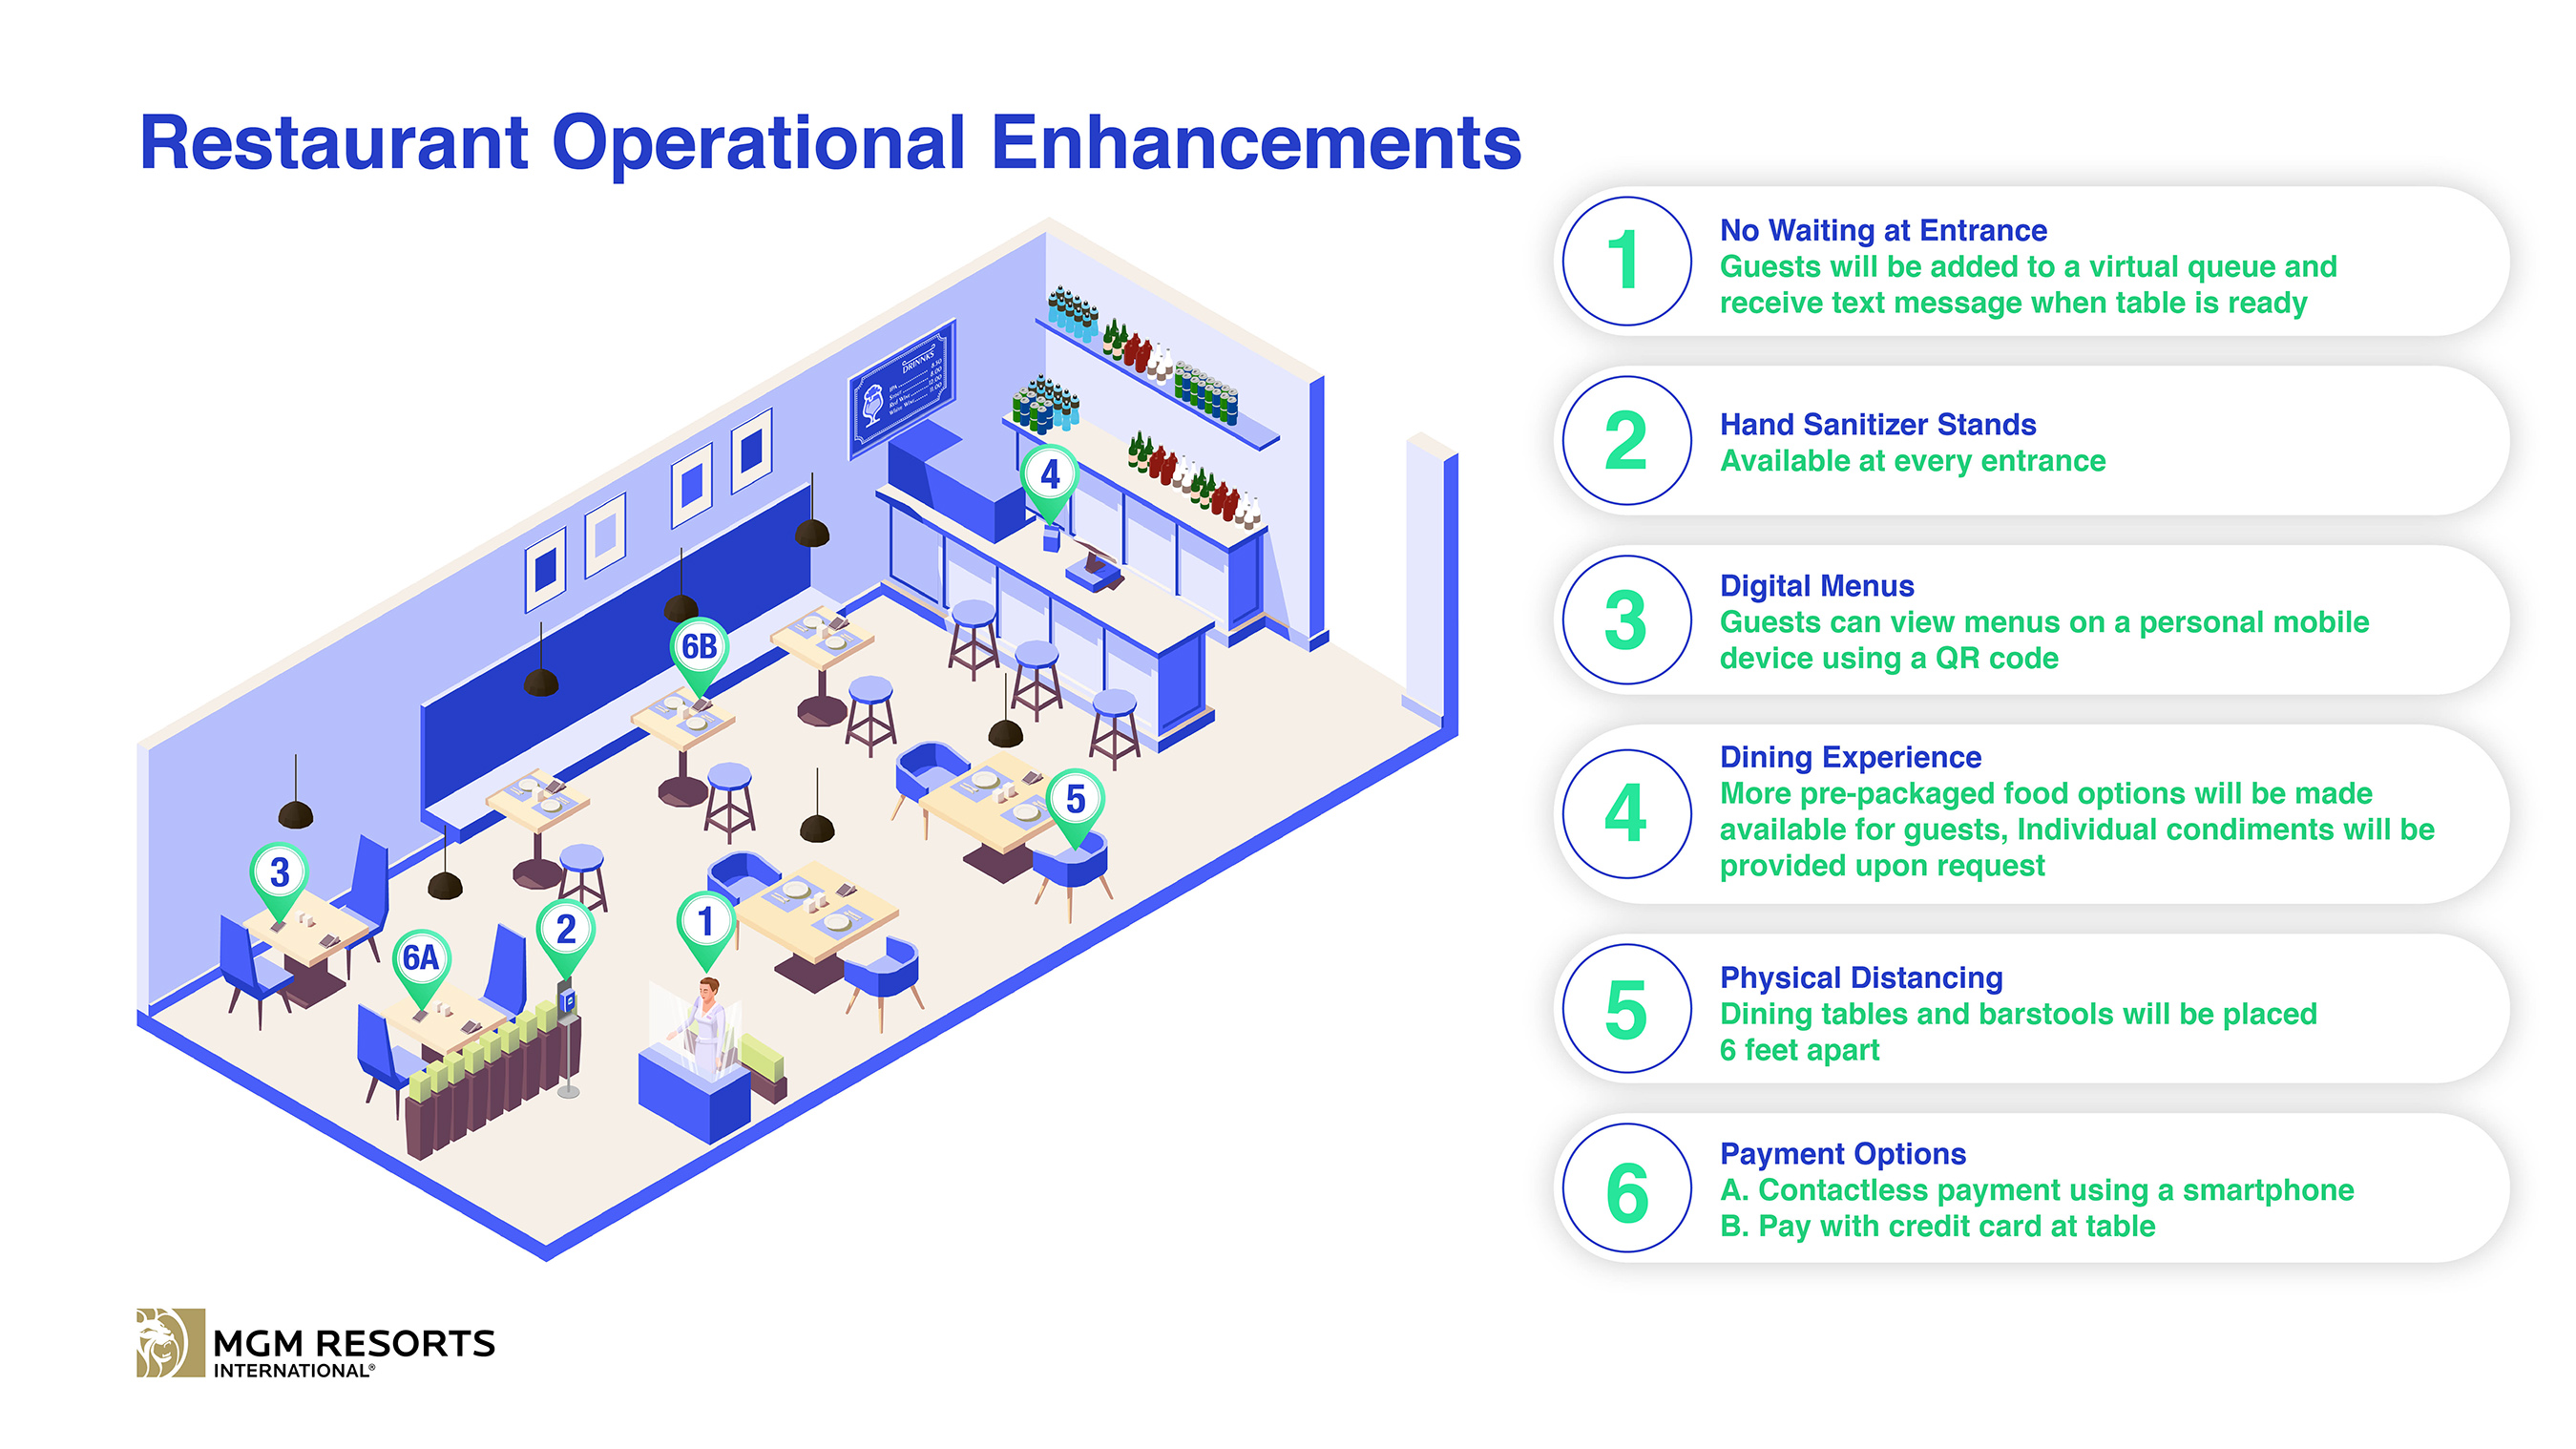 Restaurant Operational Enhancements